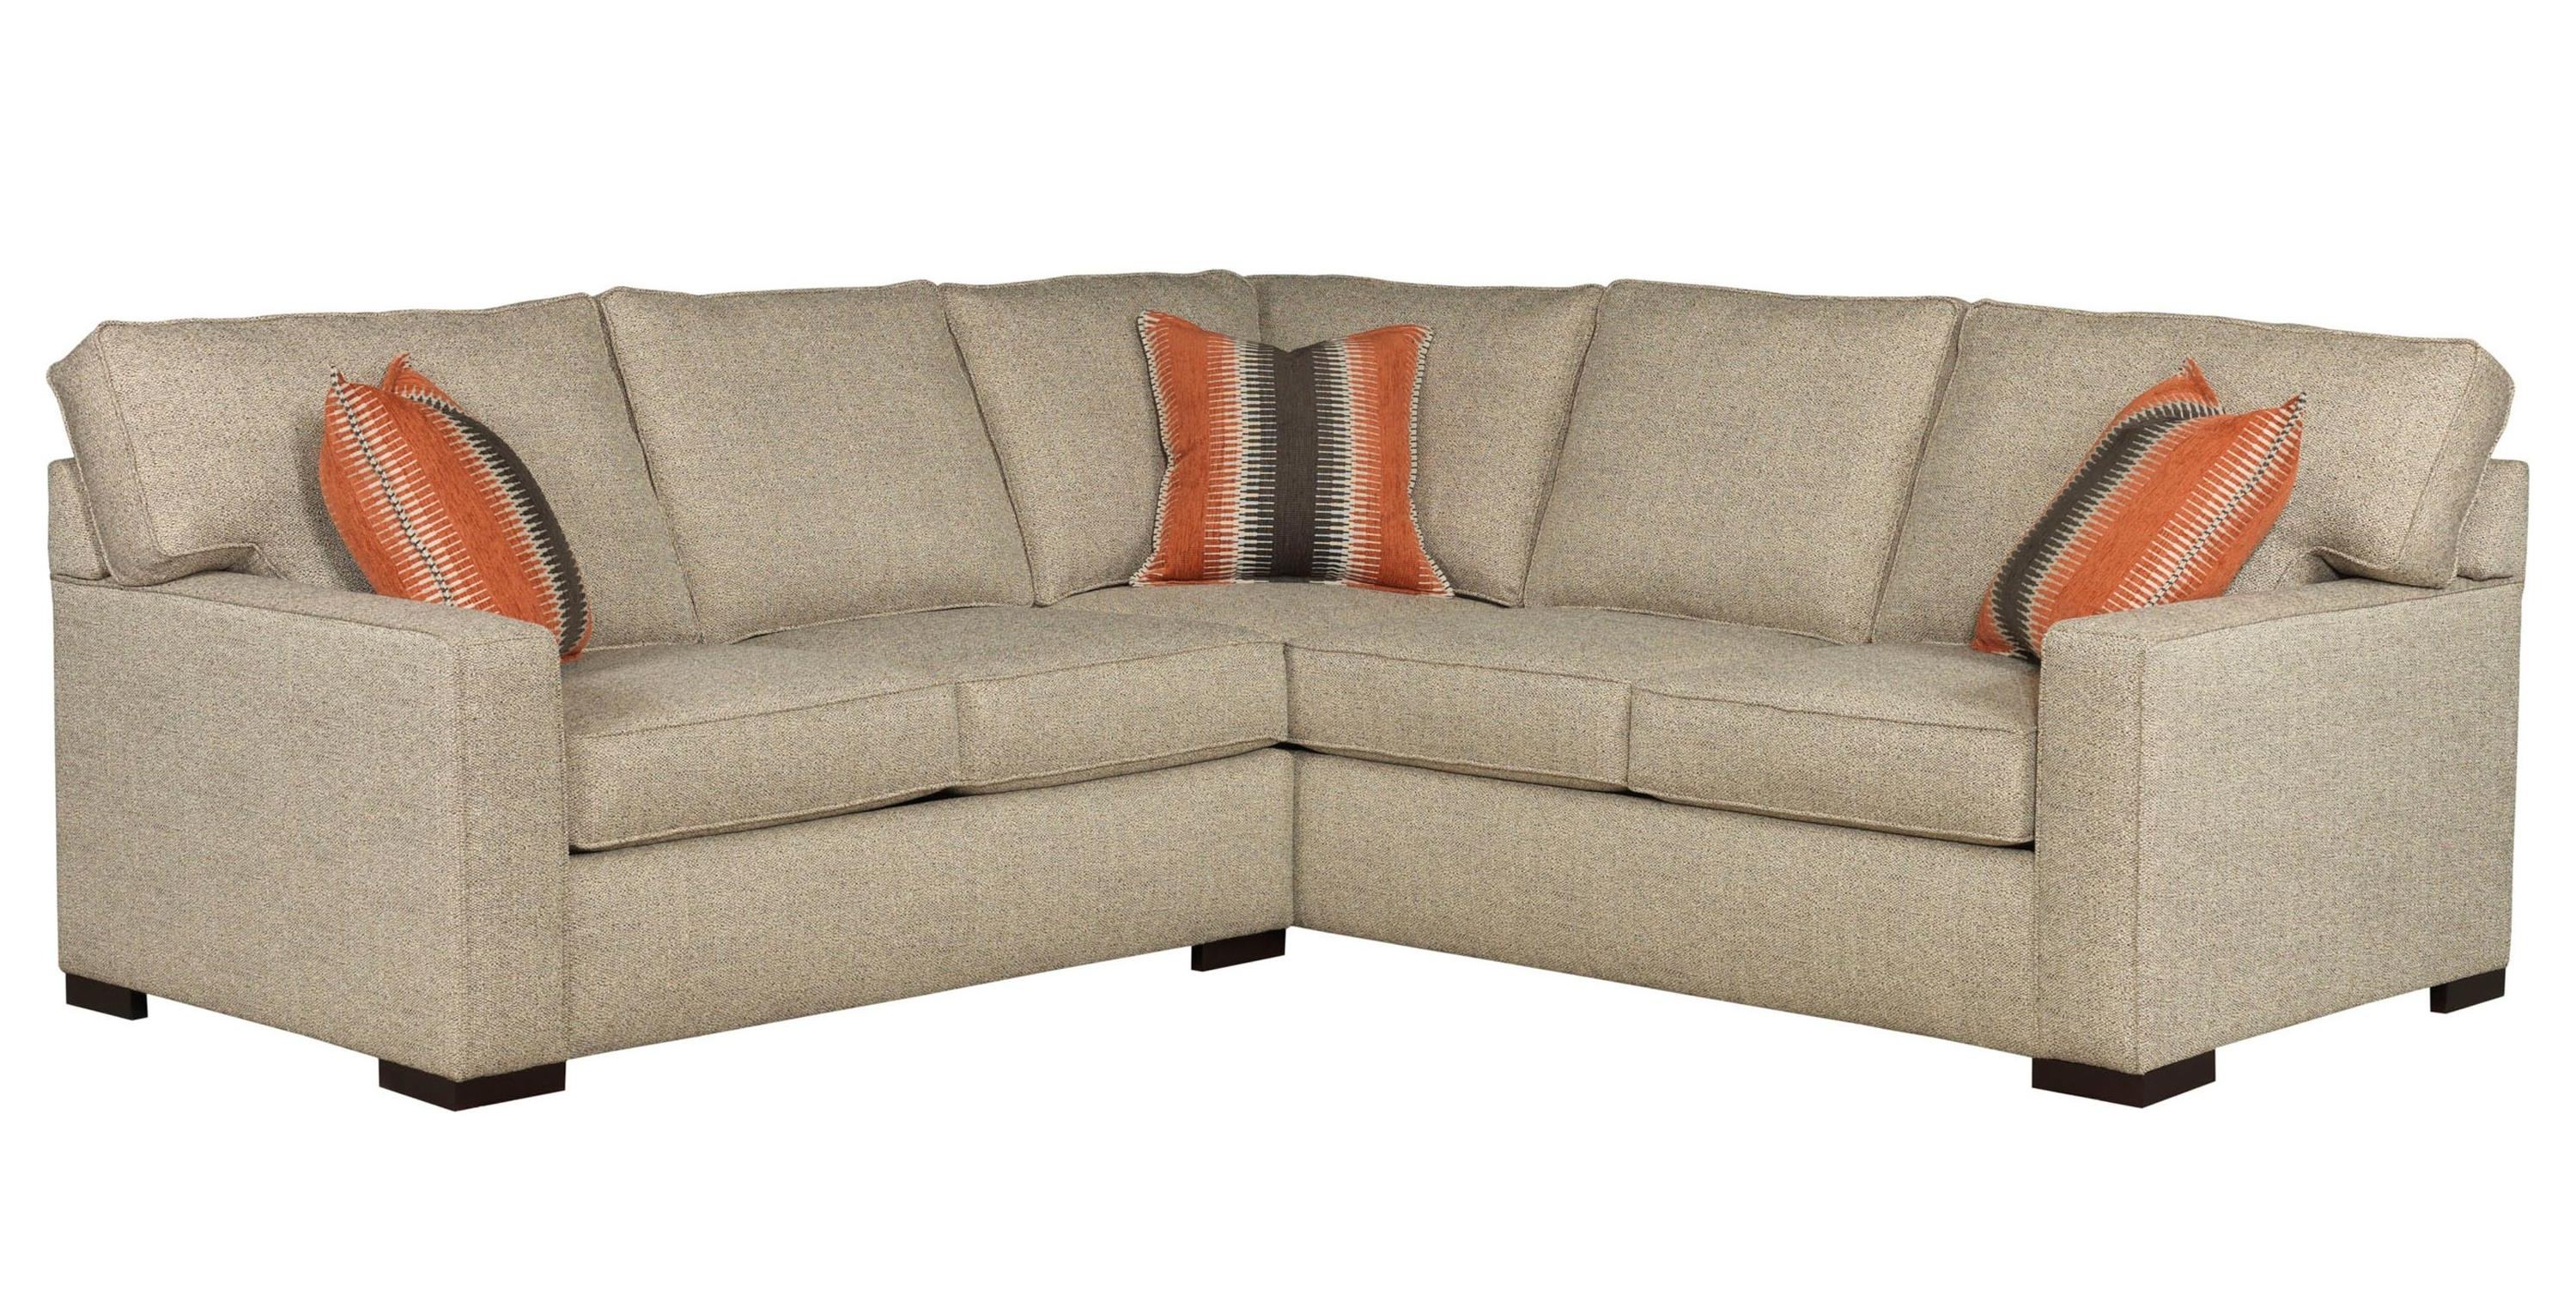 Well Liked Broyhill Furniture Raphael Contemporary Two Piece Sectional Sofa For Niagara Sectional Sofas (View 15 of 20)